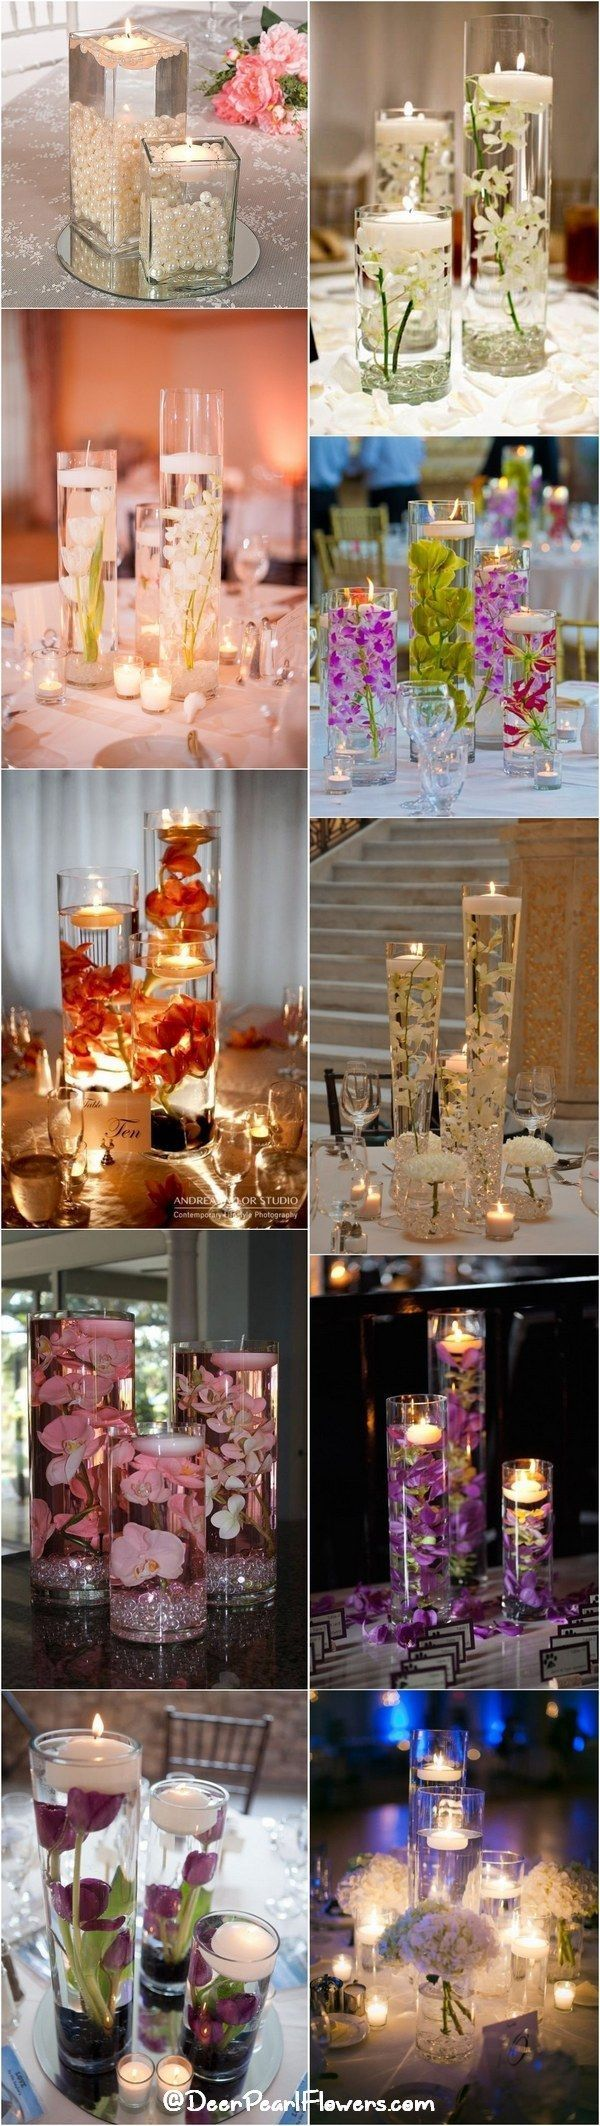 wedding centerpieces centerpieces for wedding 20 Impossibly Romantic Floating Wedding Centerpieces